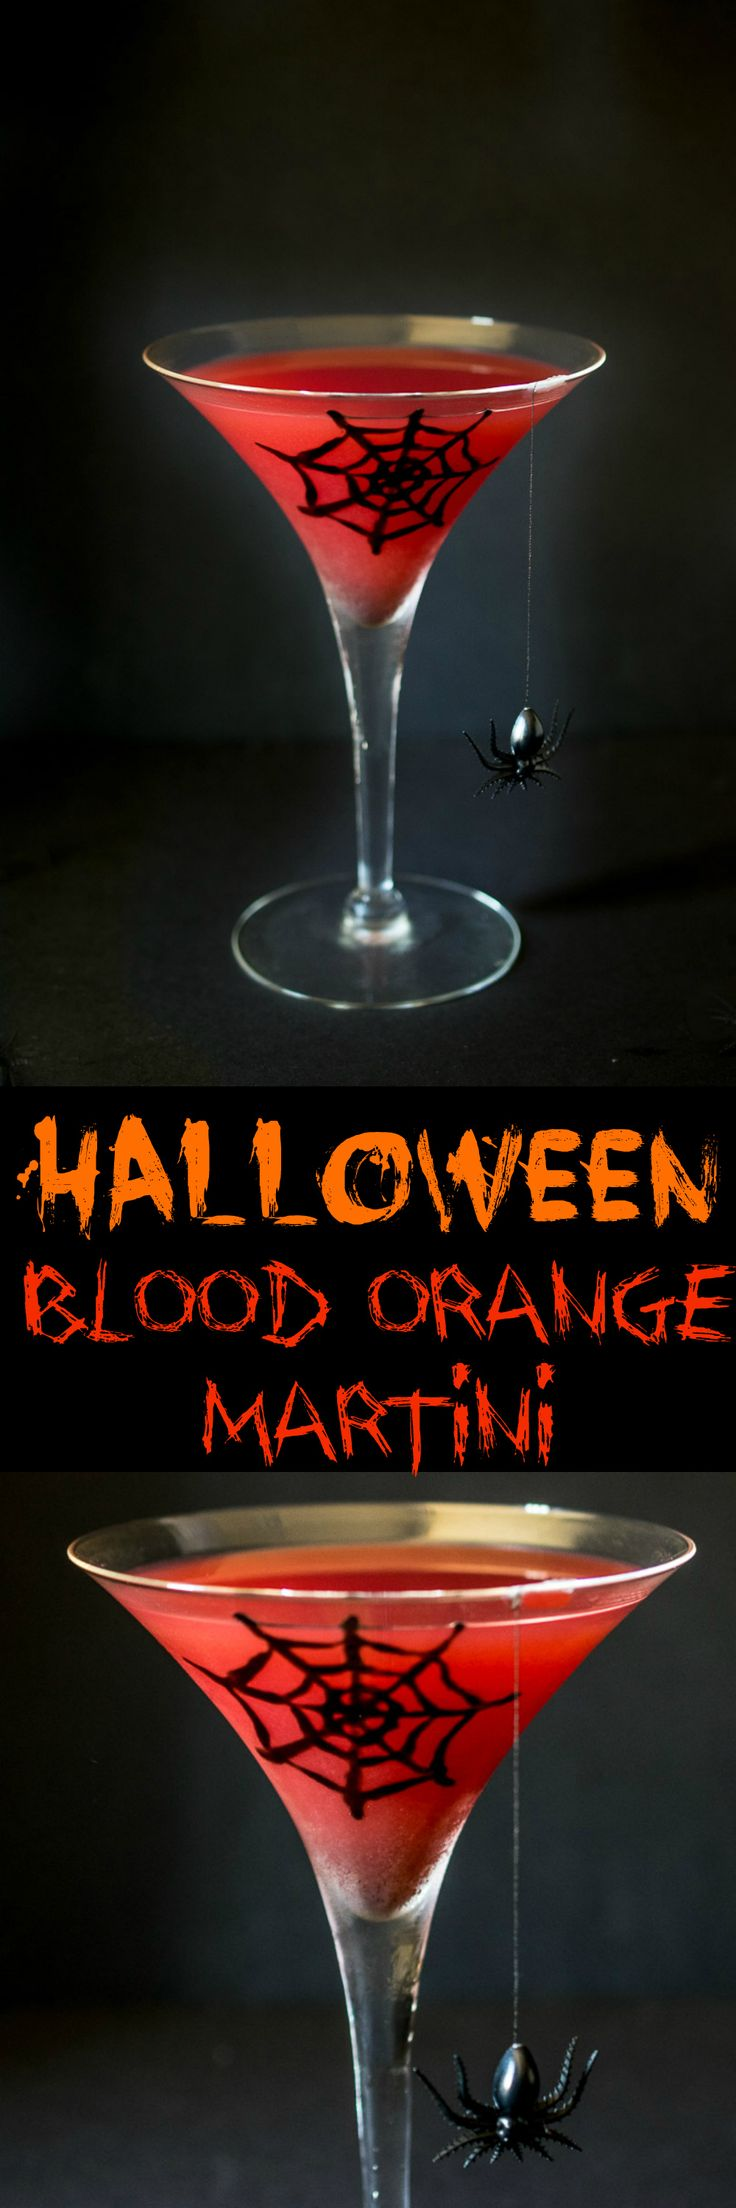 Halloween blood orange martini